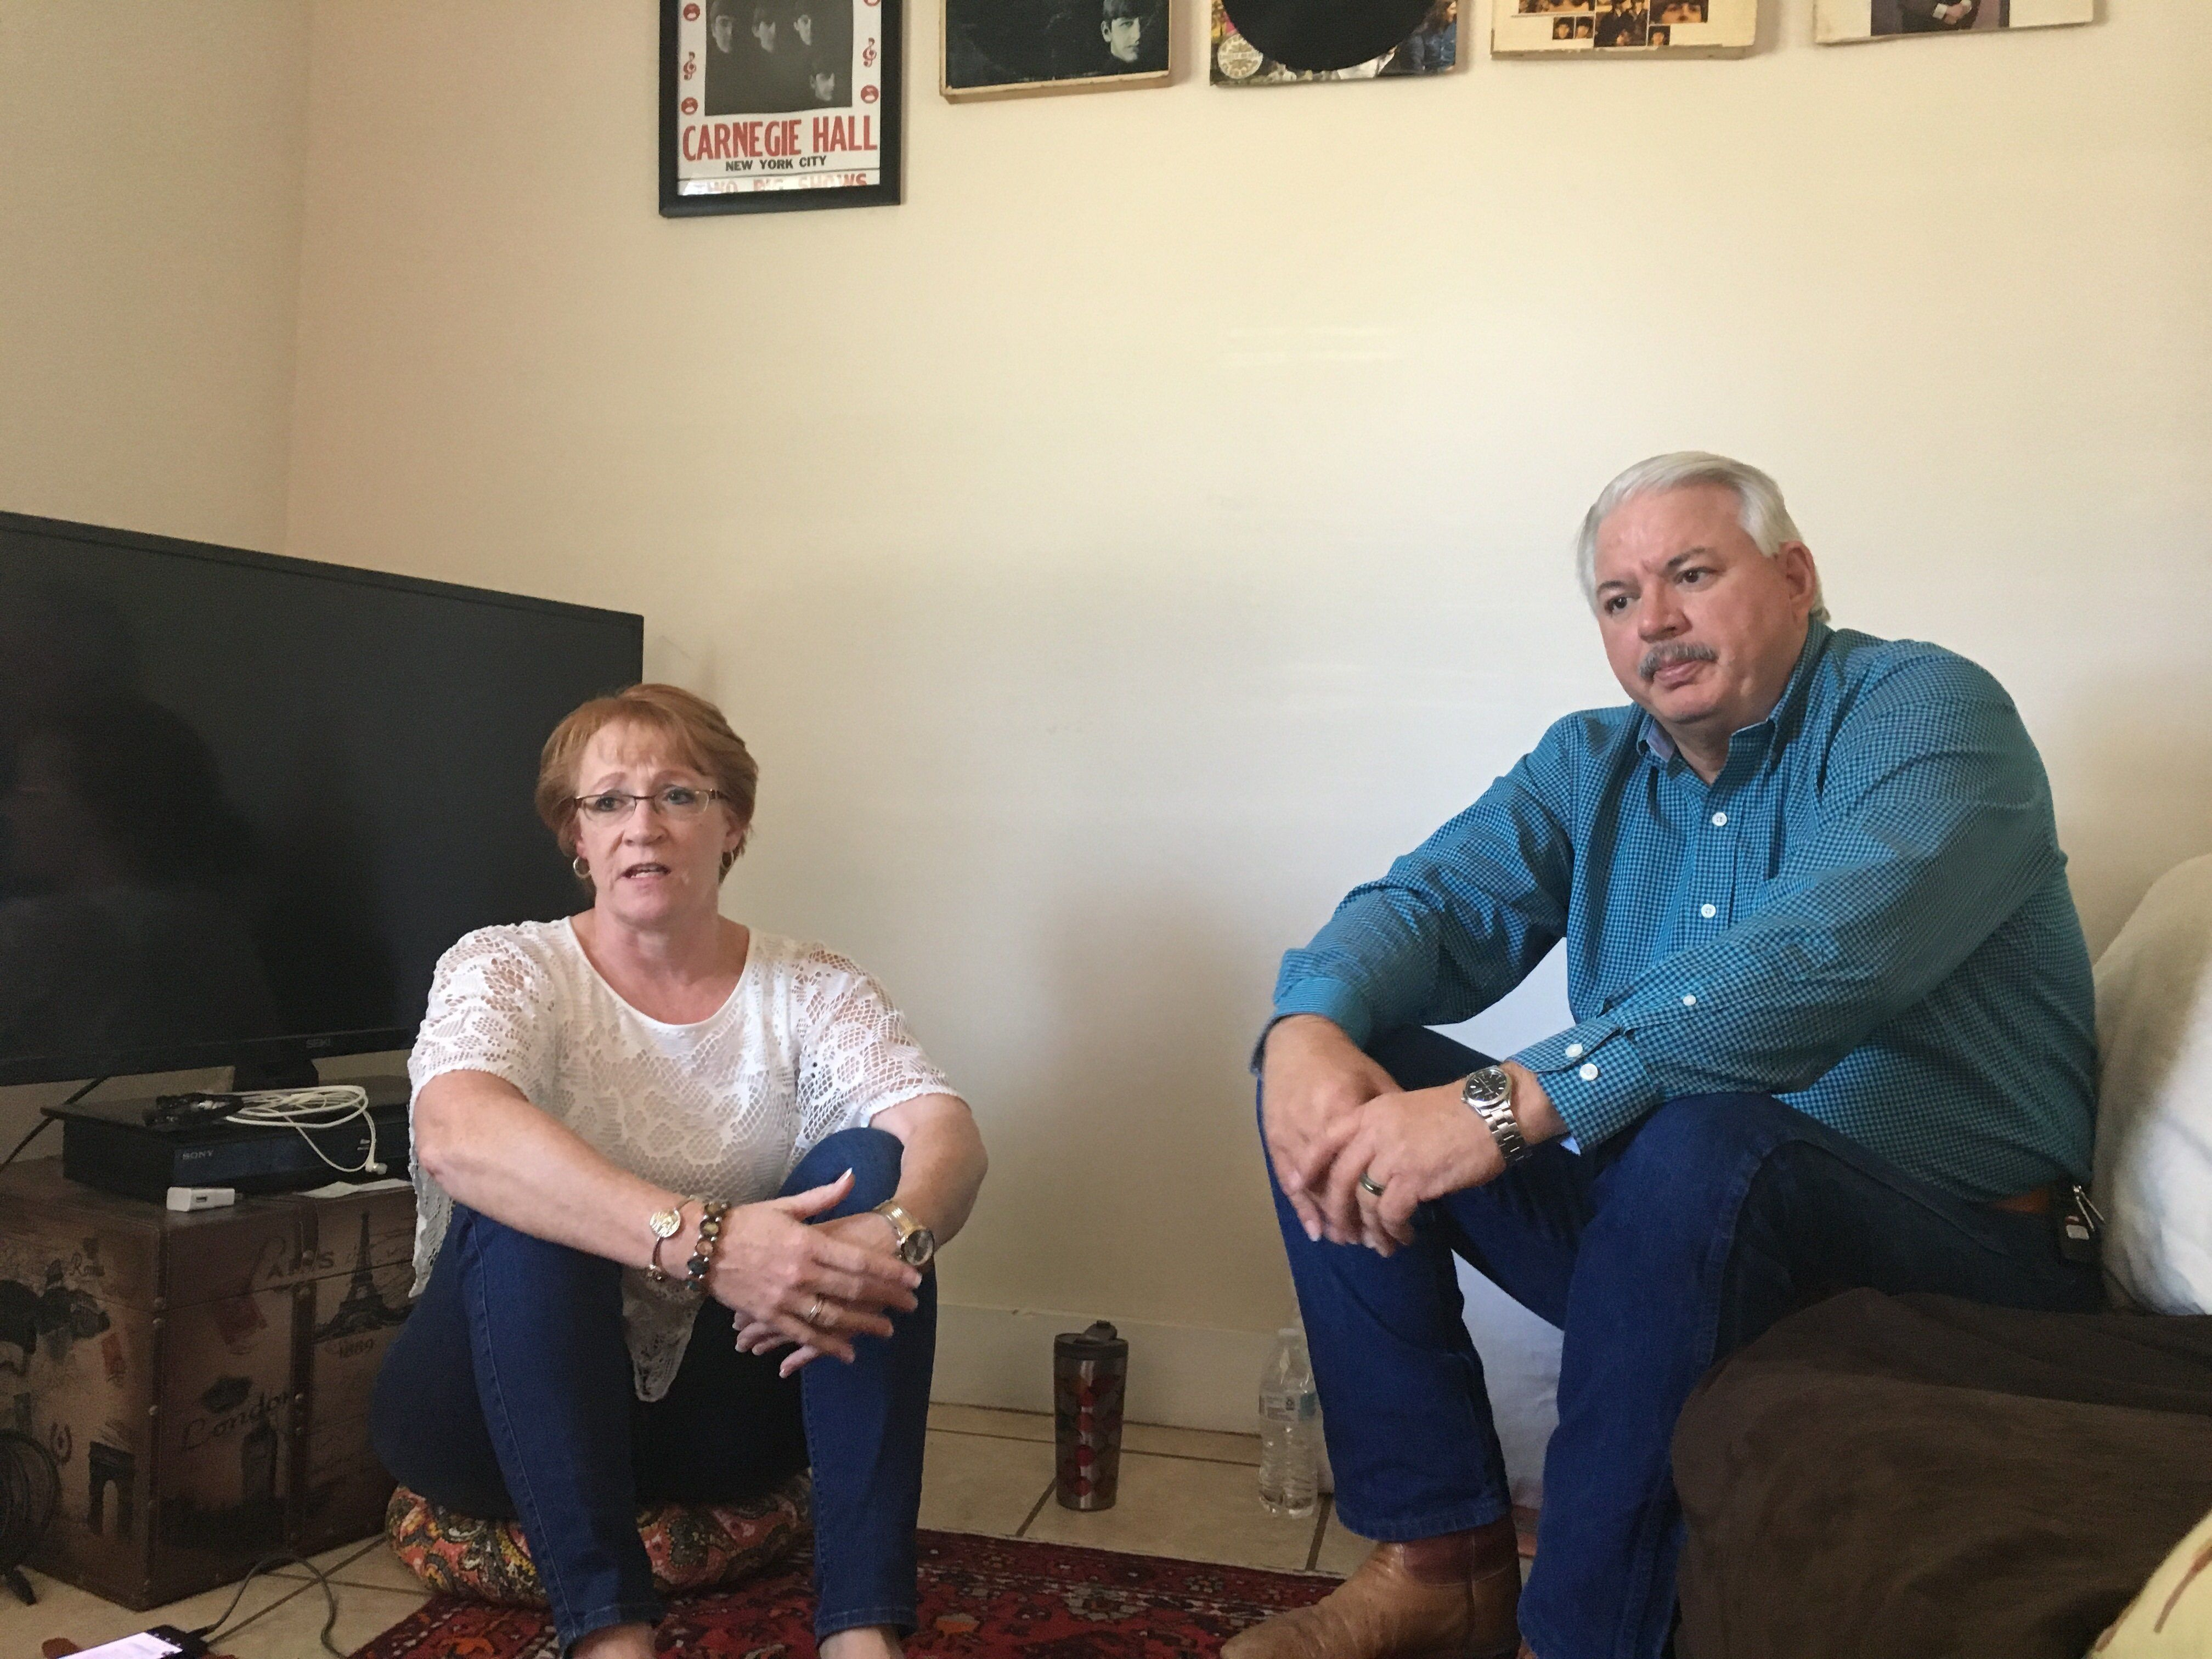 Billie Winner-Davis and her husband, Gary Davis, are staying in Reality Winner's Augusta, Georgia, home as they stand by her.